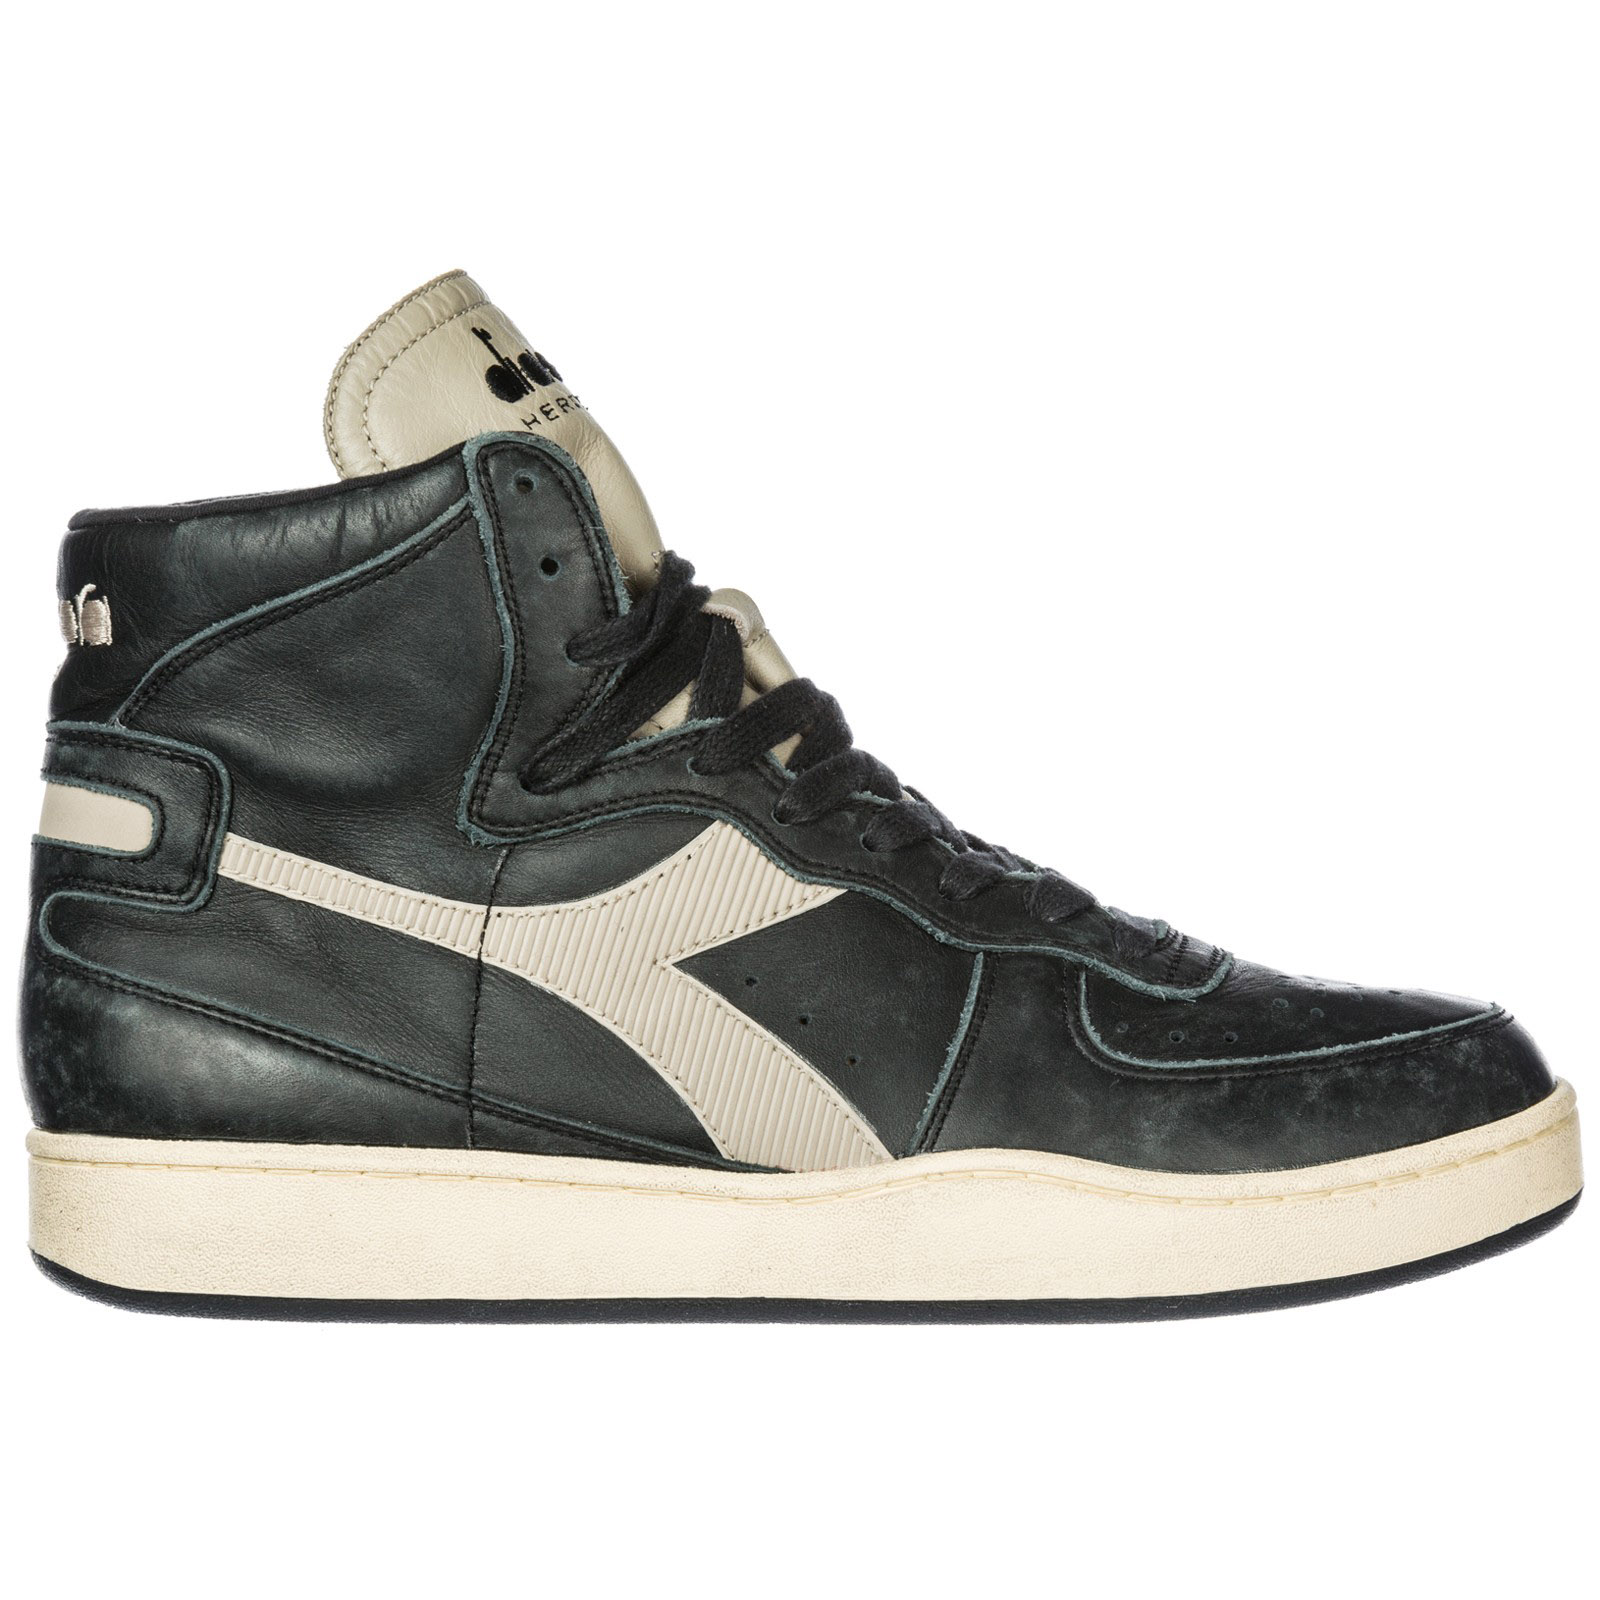 aecfbafd4fbd Diadora Heritage Men s shoes high top leather trainers sneakers mi basket